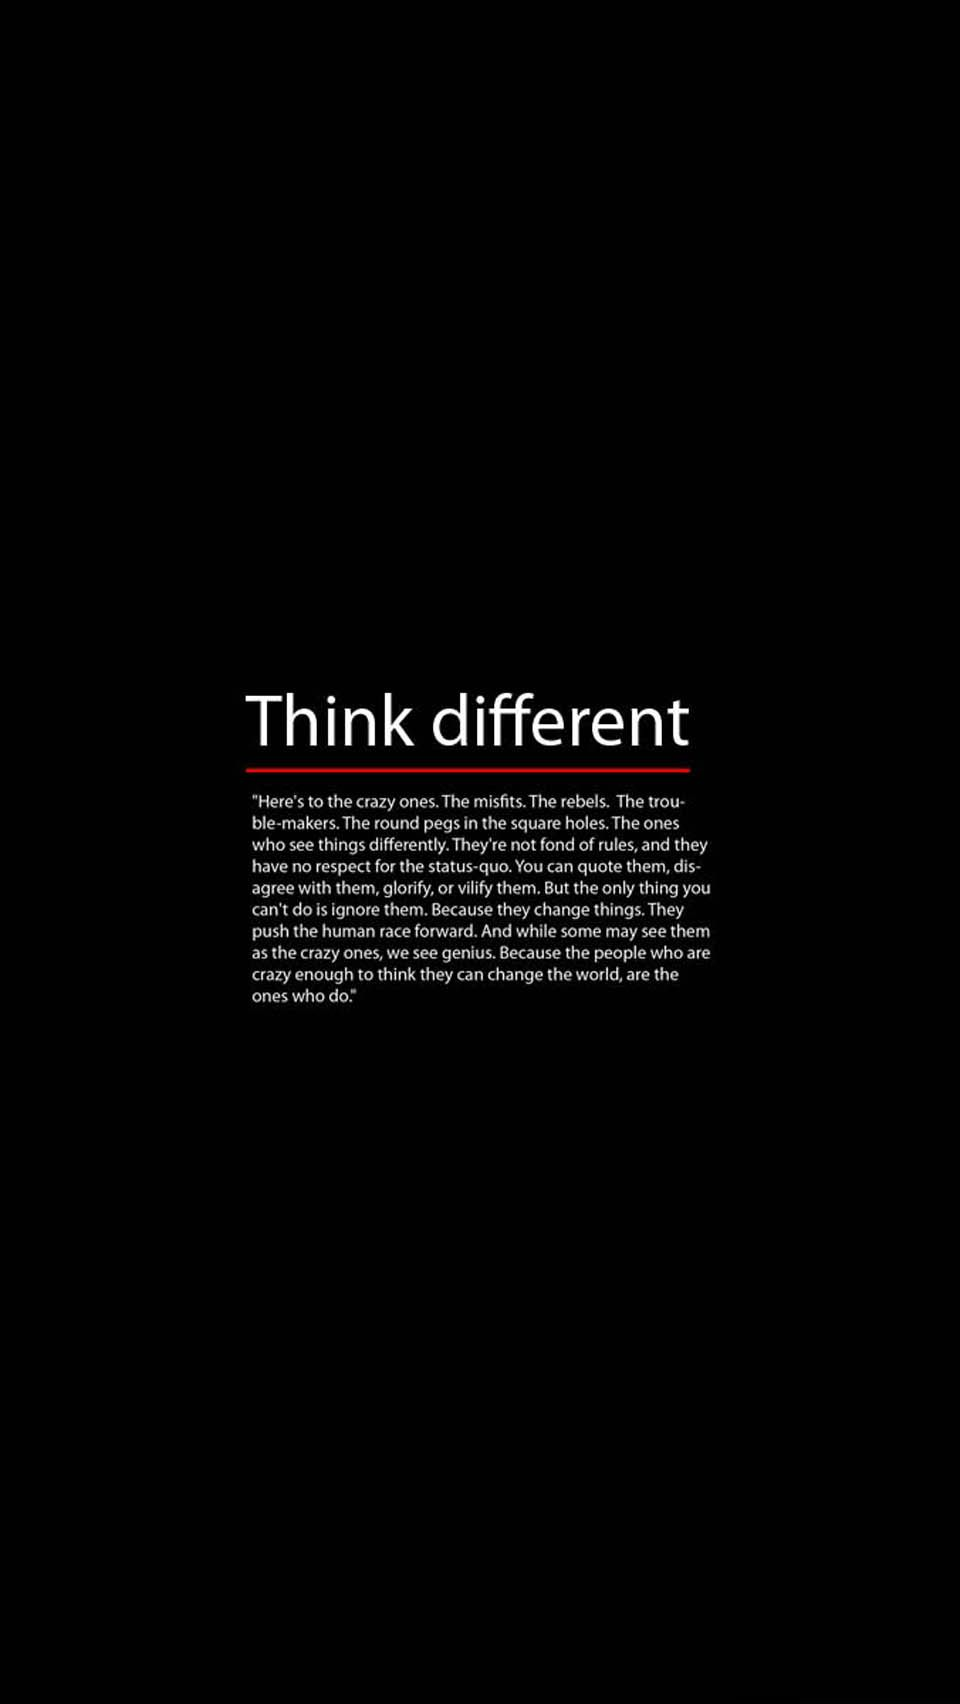 Think different apple wallpaper hd for mac hd wallpapers think different apple wallpaper hd for mac voltagebd Image collections